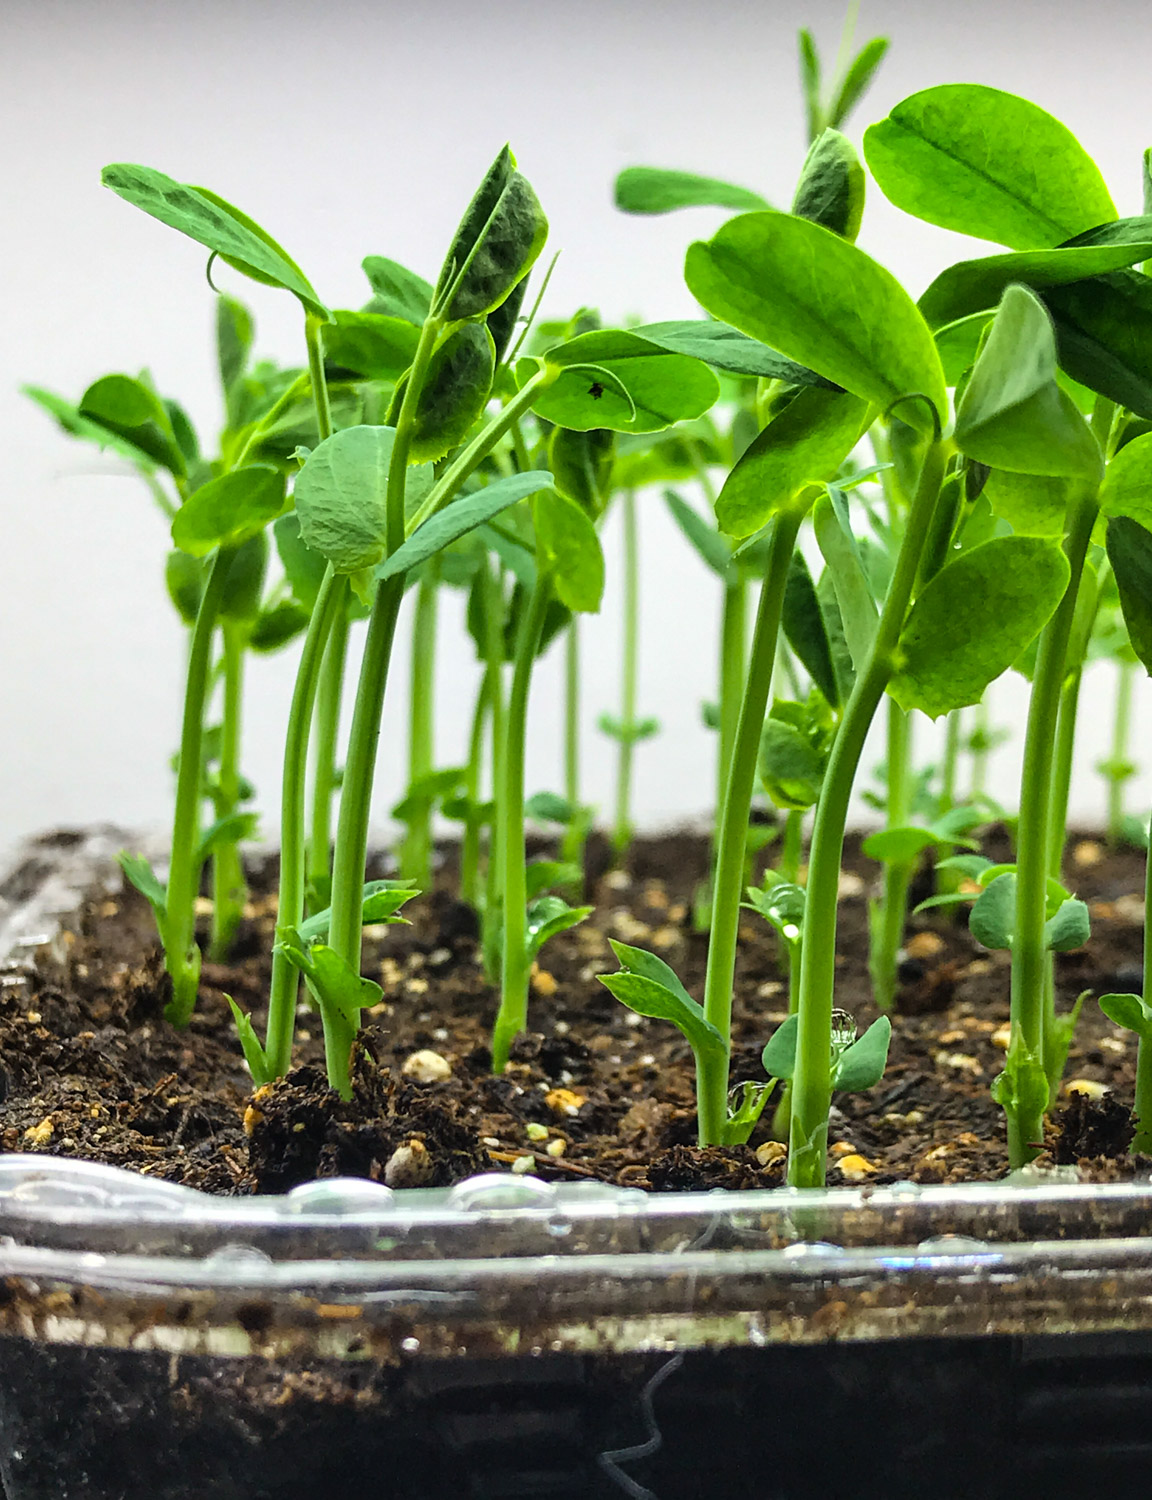 Pea sprouts are up! One more week of growing and they are ready for harvesting.